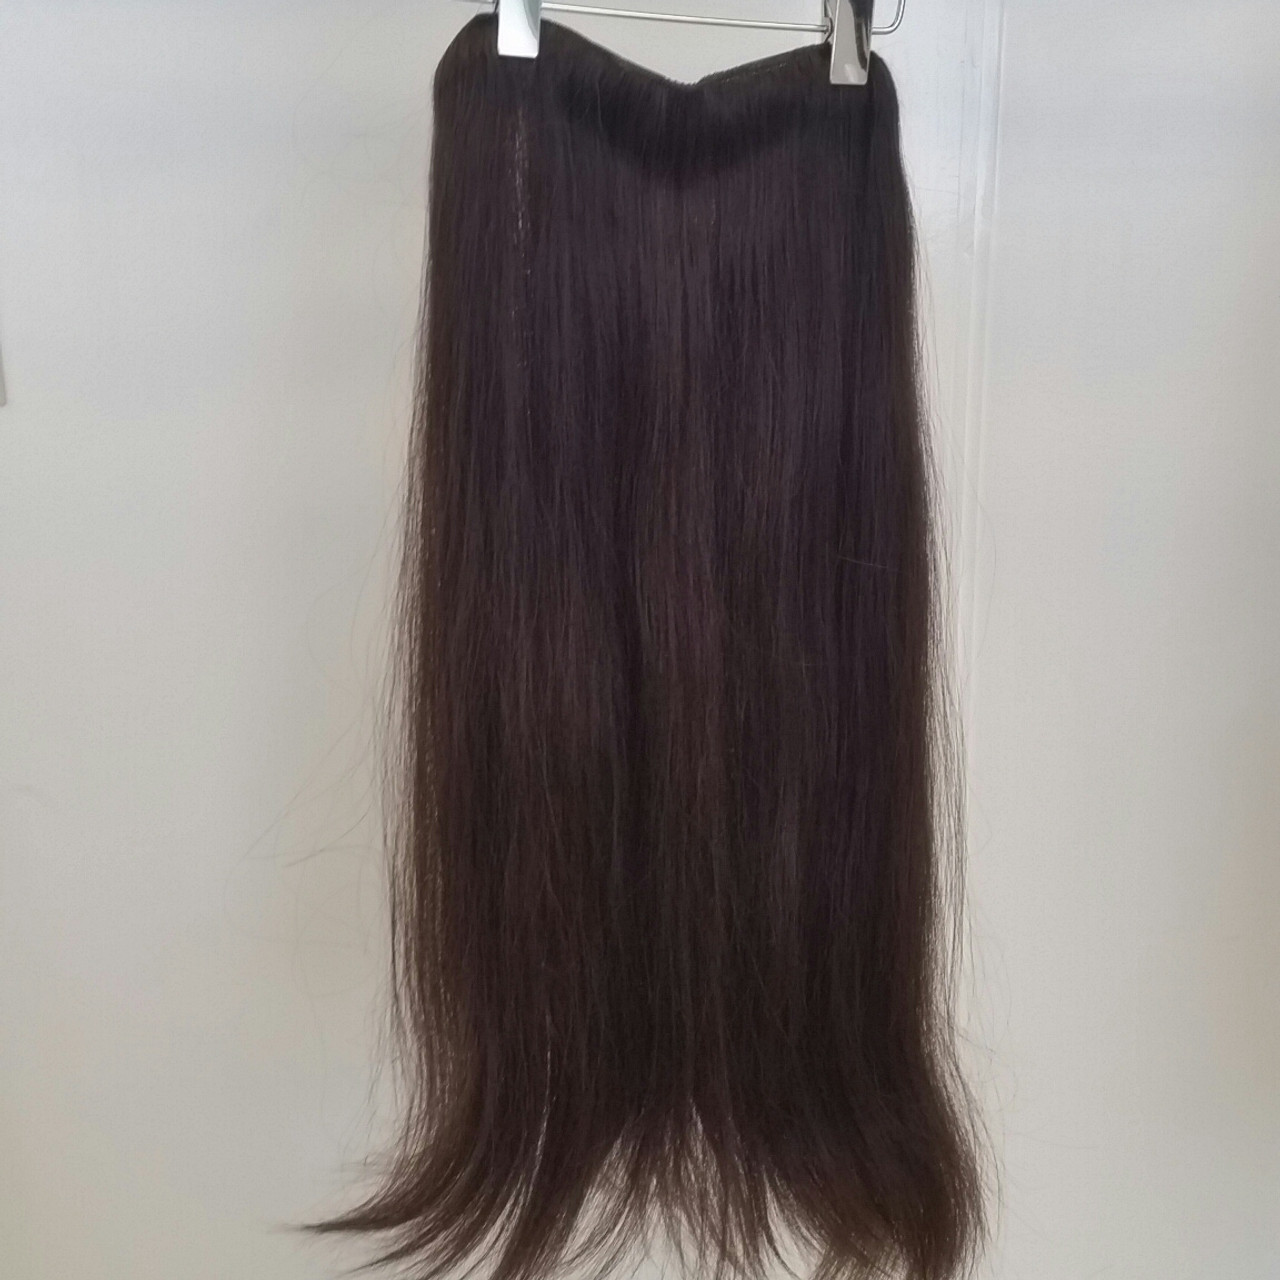 Human Hair Extensions Long Clip In 3 Piece Set 4 Straight Hair